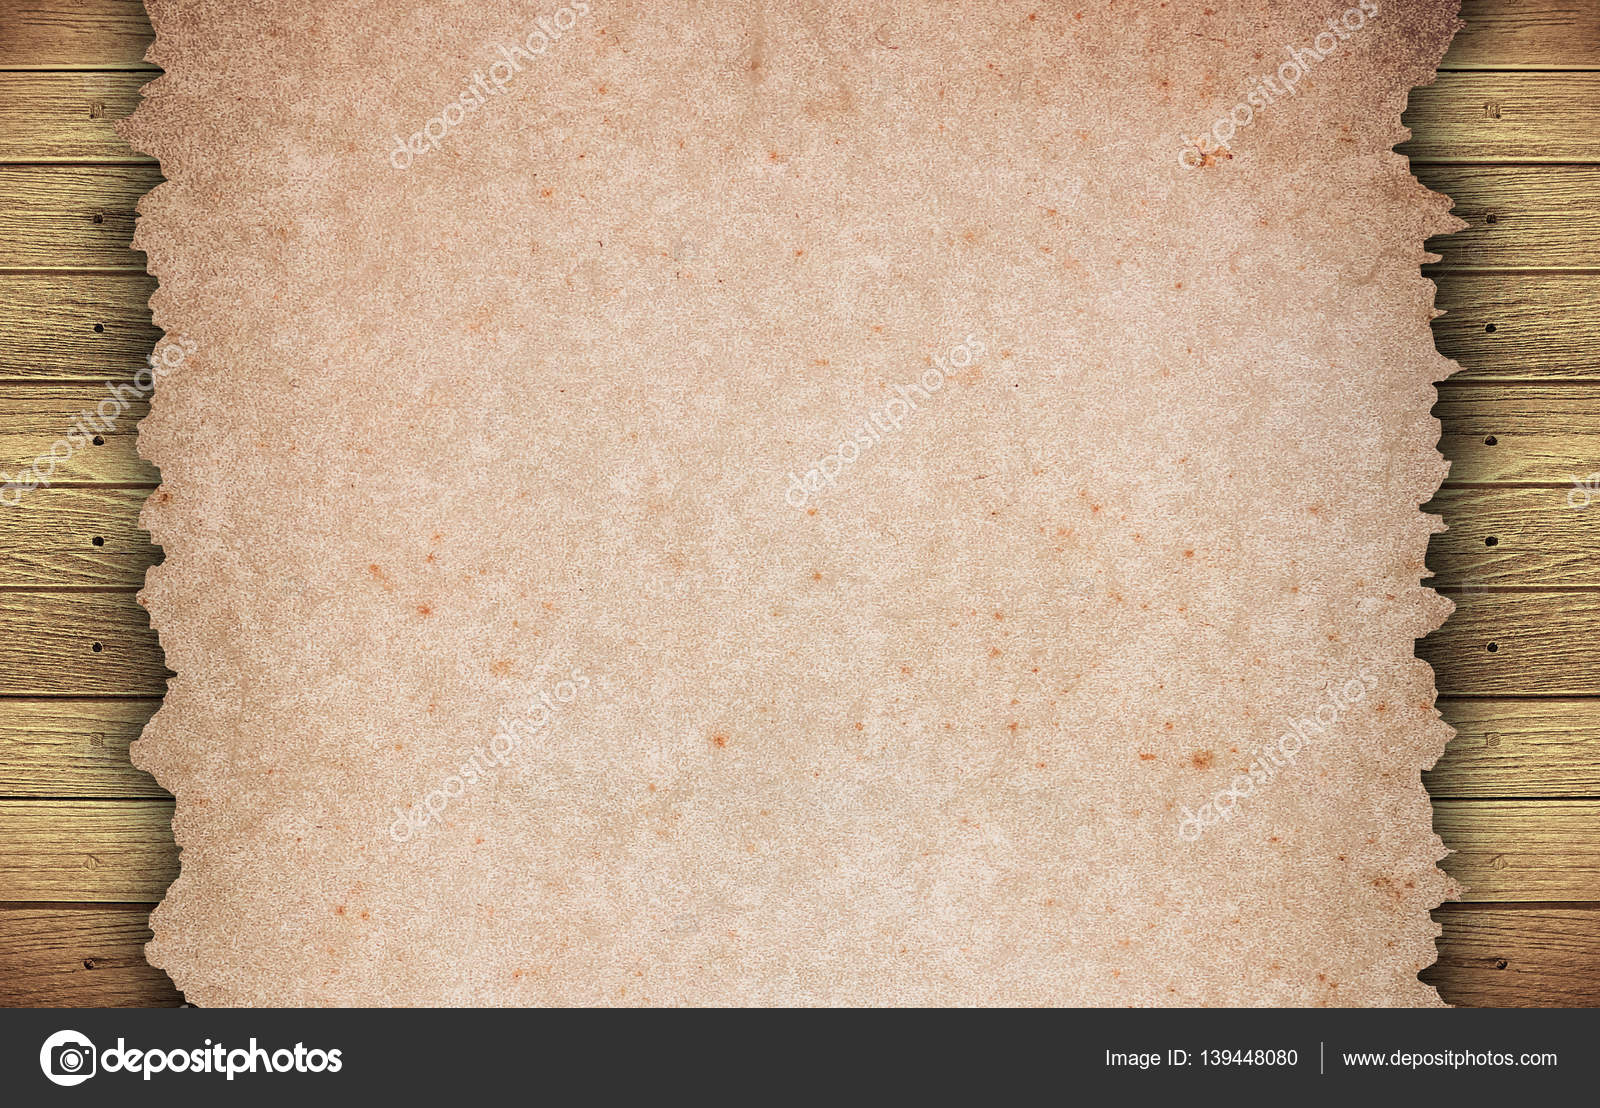 Old Grunge Paper Texture Background Stock Photo